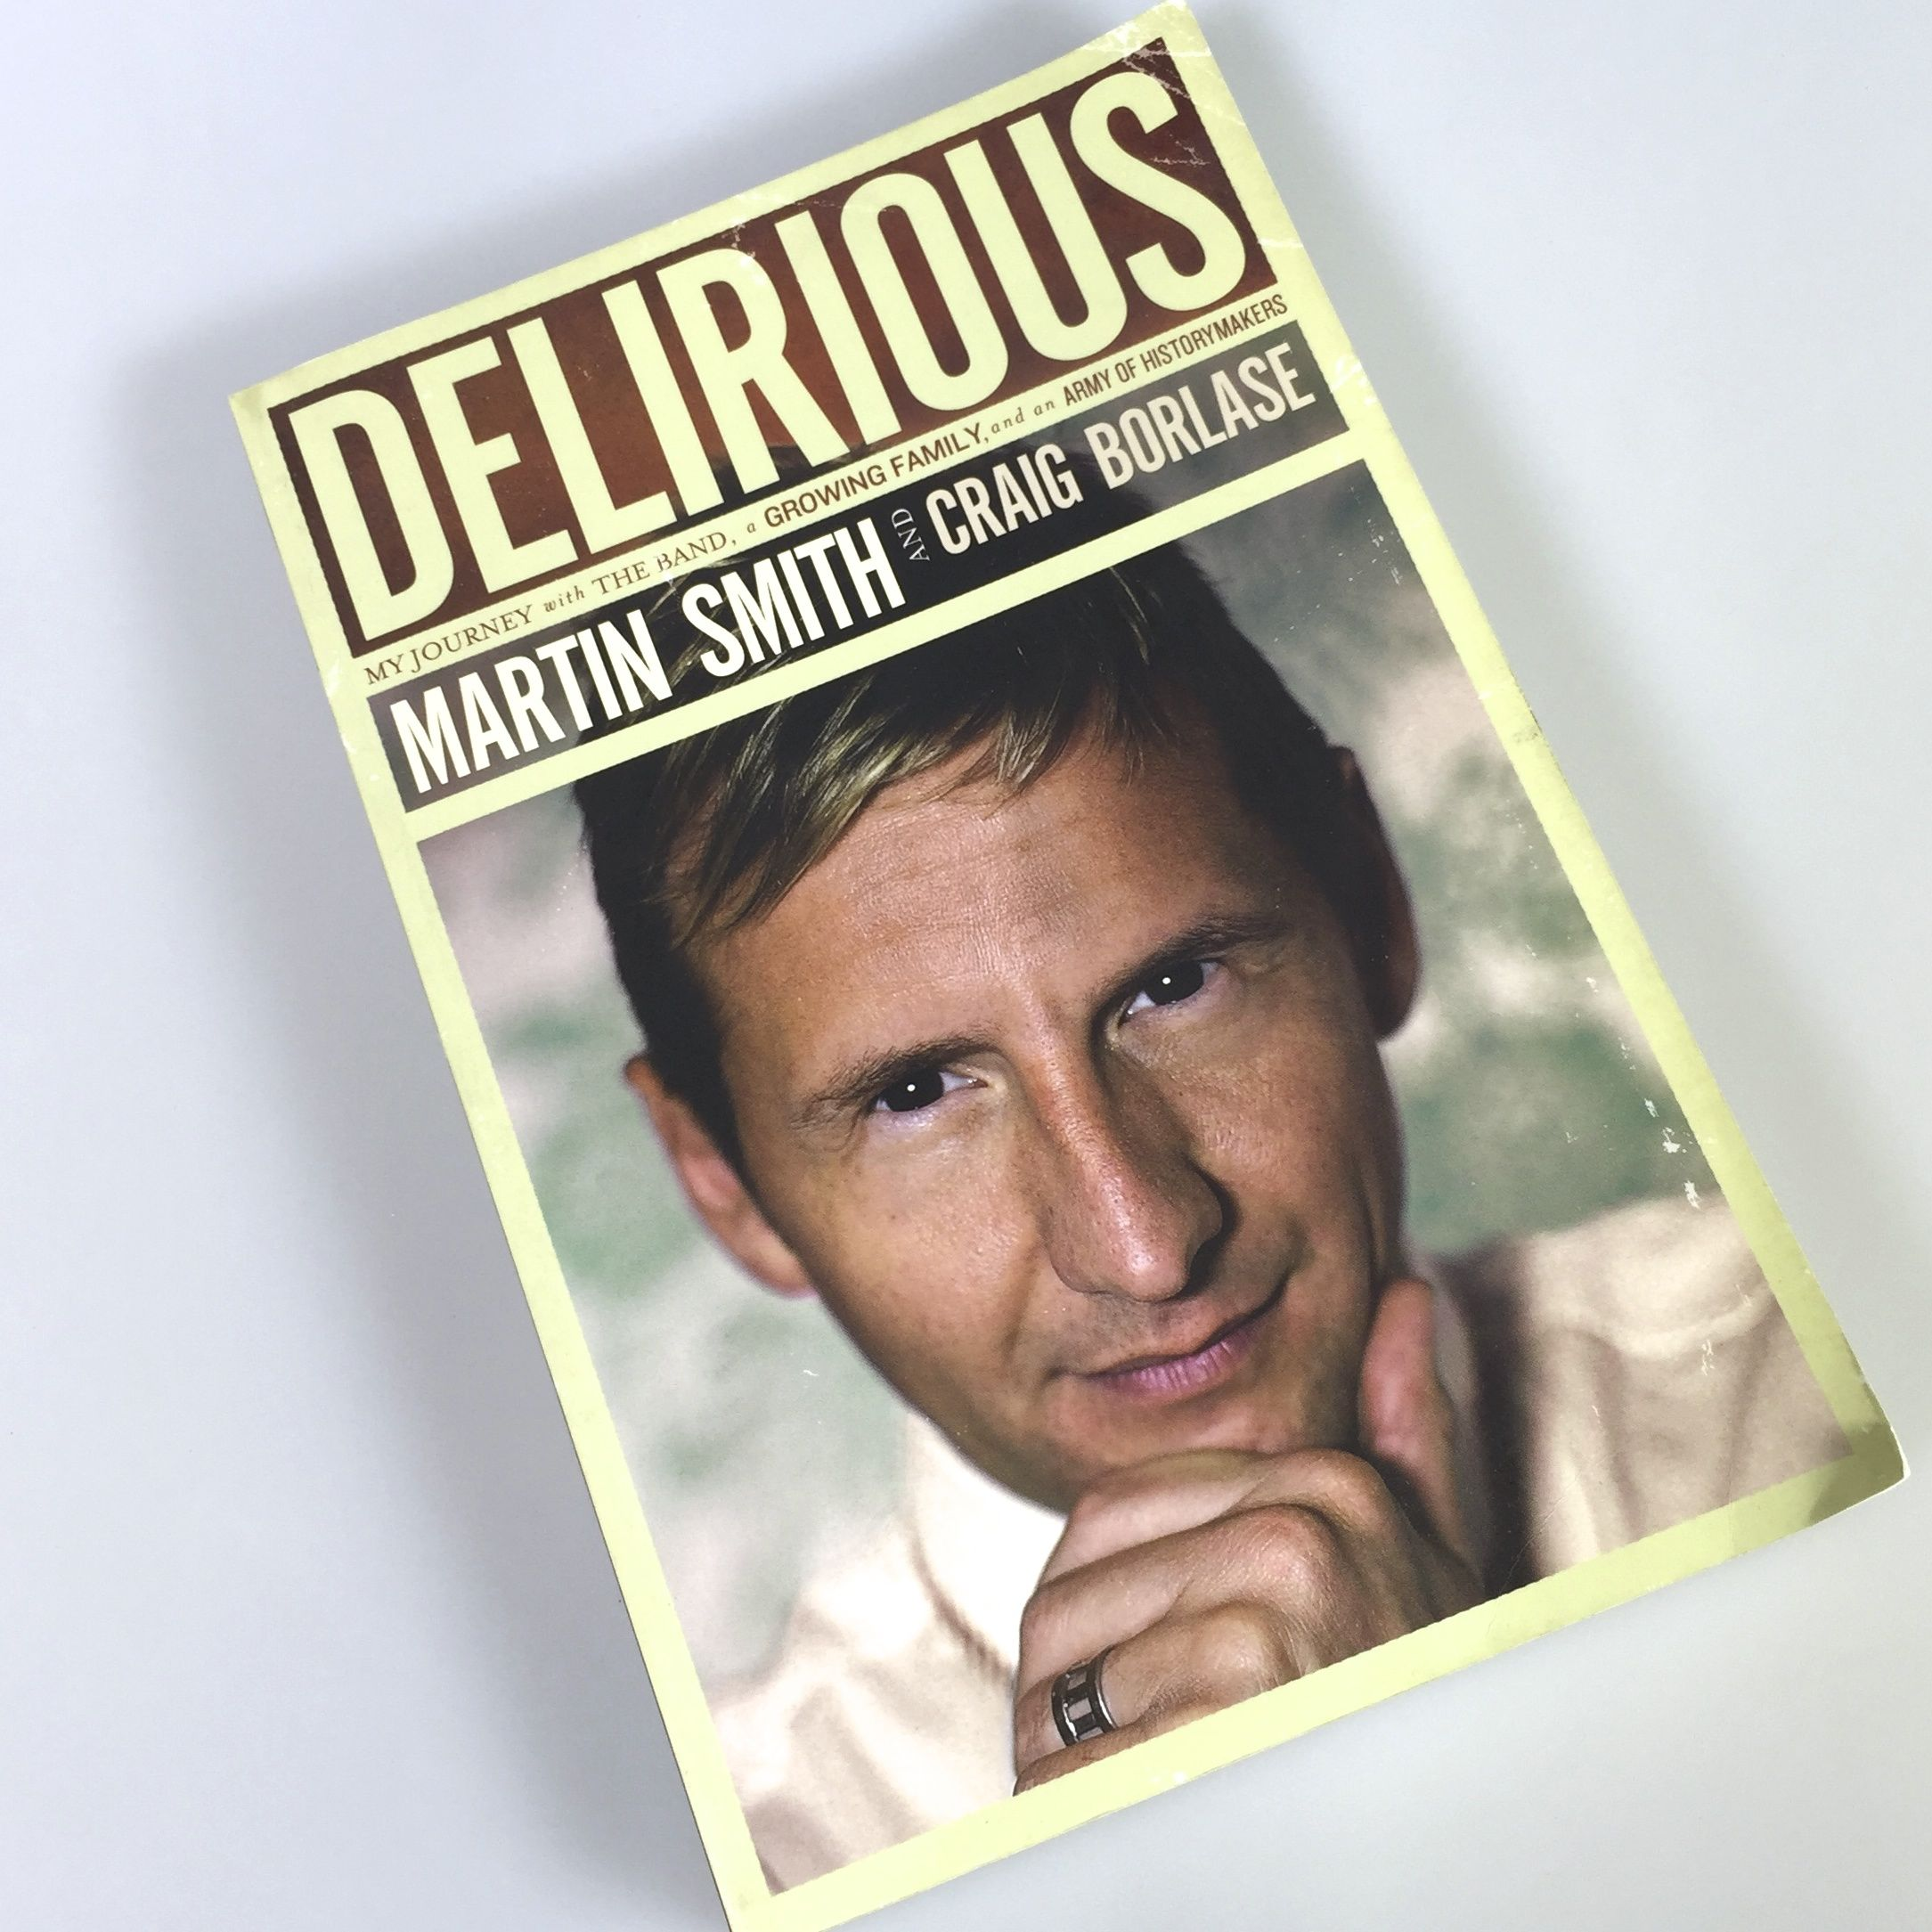 Delirious by Martin Smith